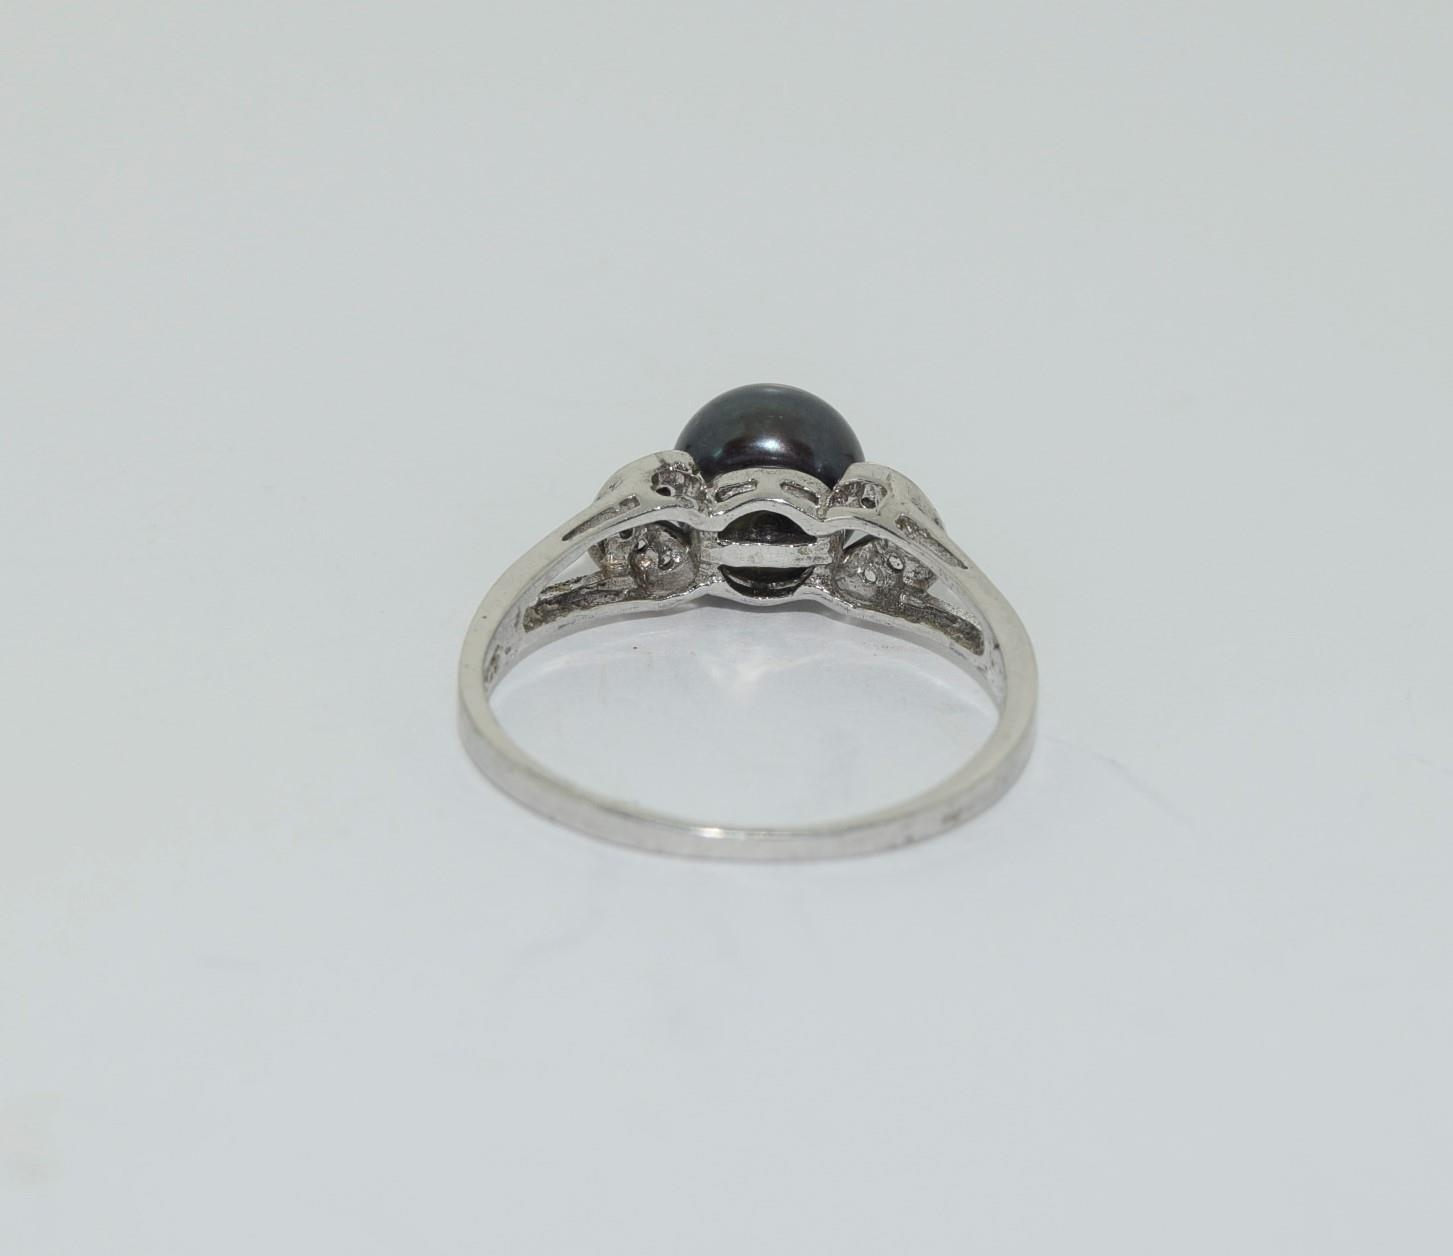 Silver ladies ring set with round pearl mount. Size O. - Image 3 of 3